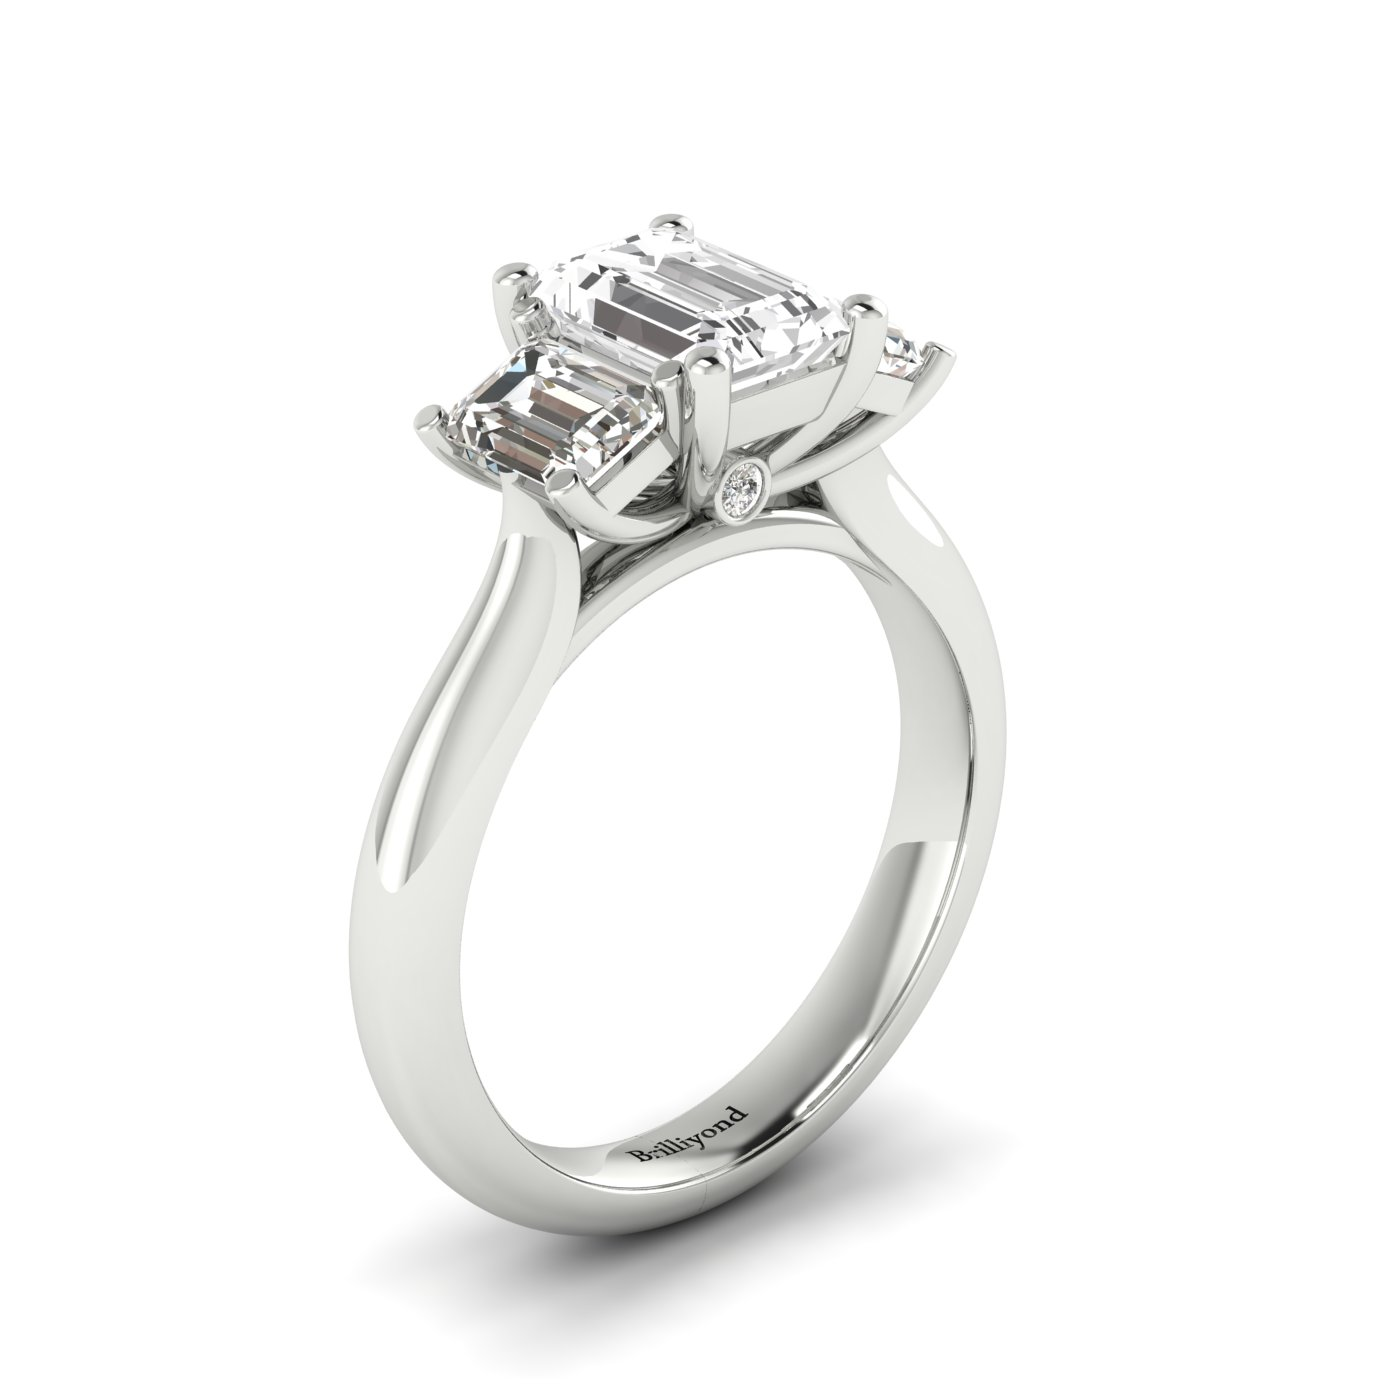 Diamond White Gold Emerald Cut Engagement Ring Blanche_image2